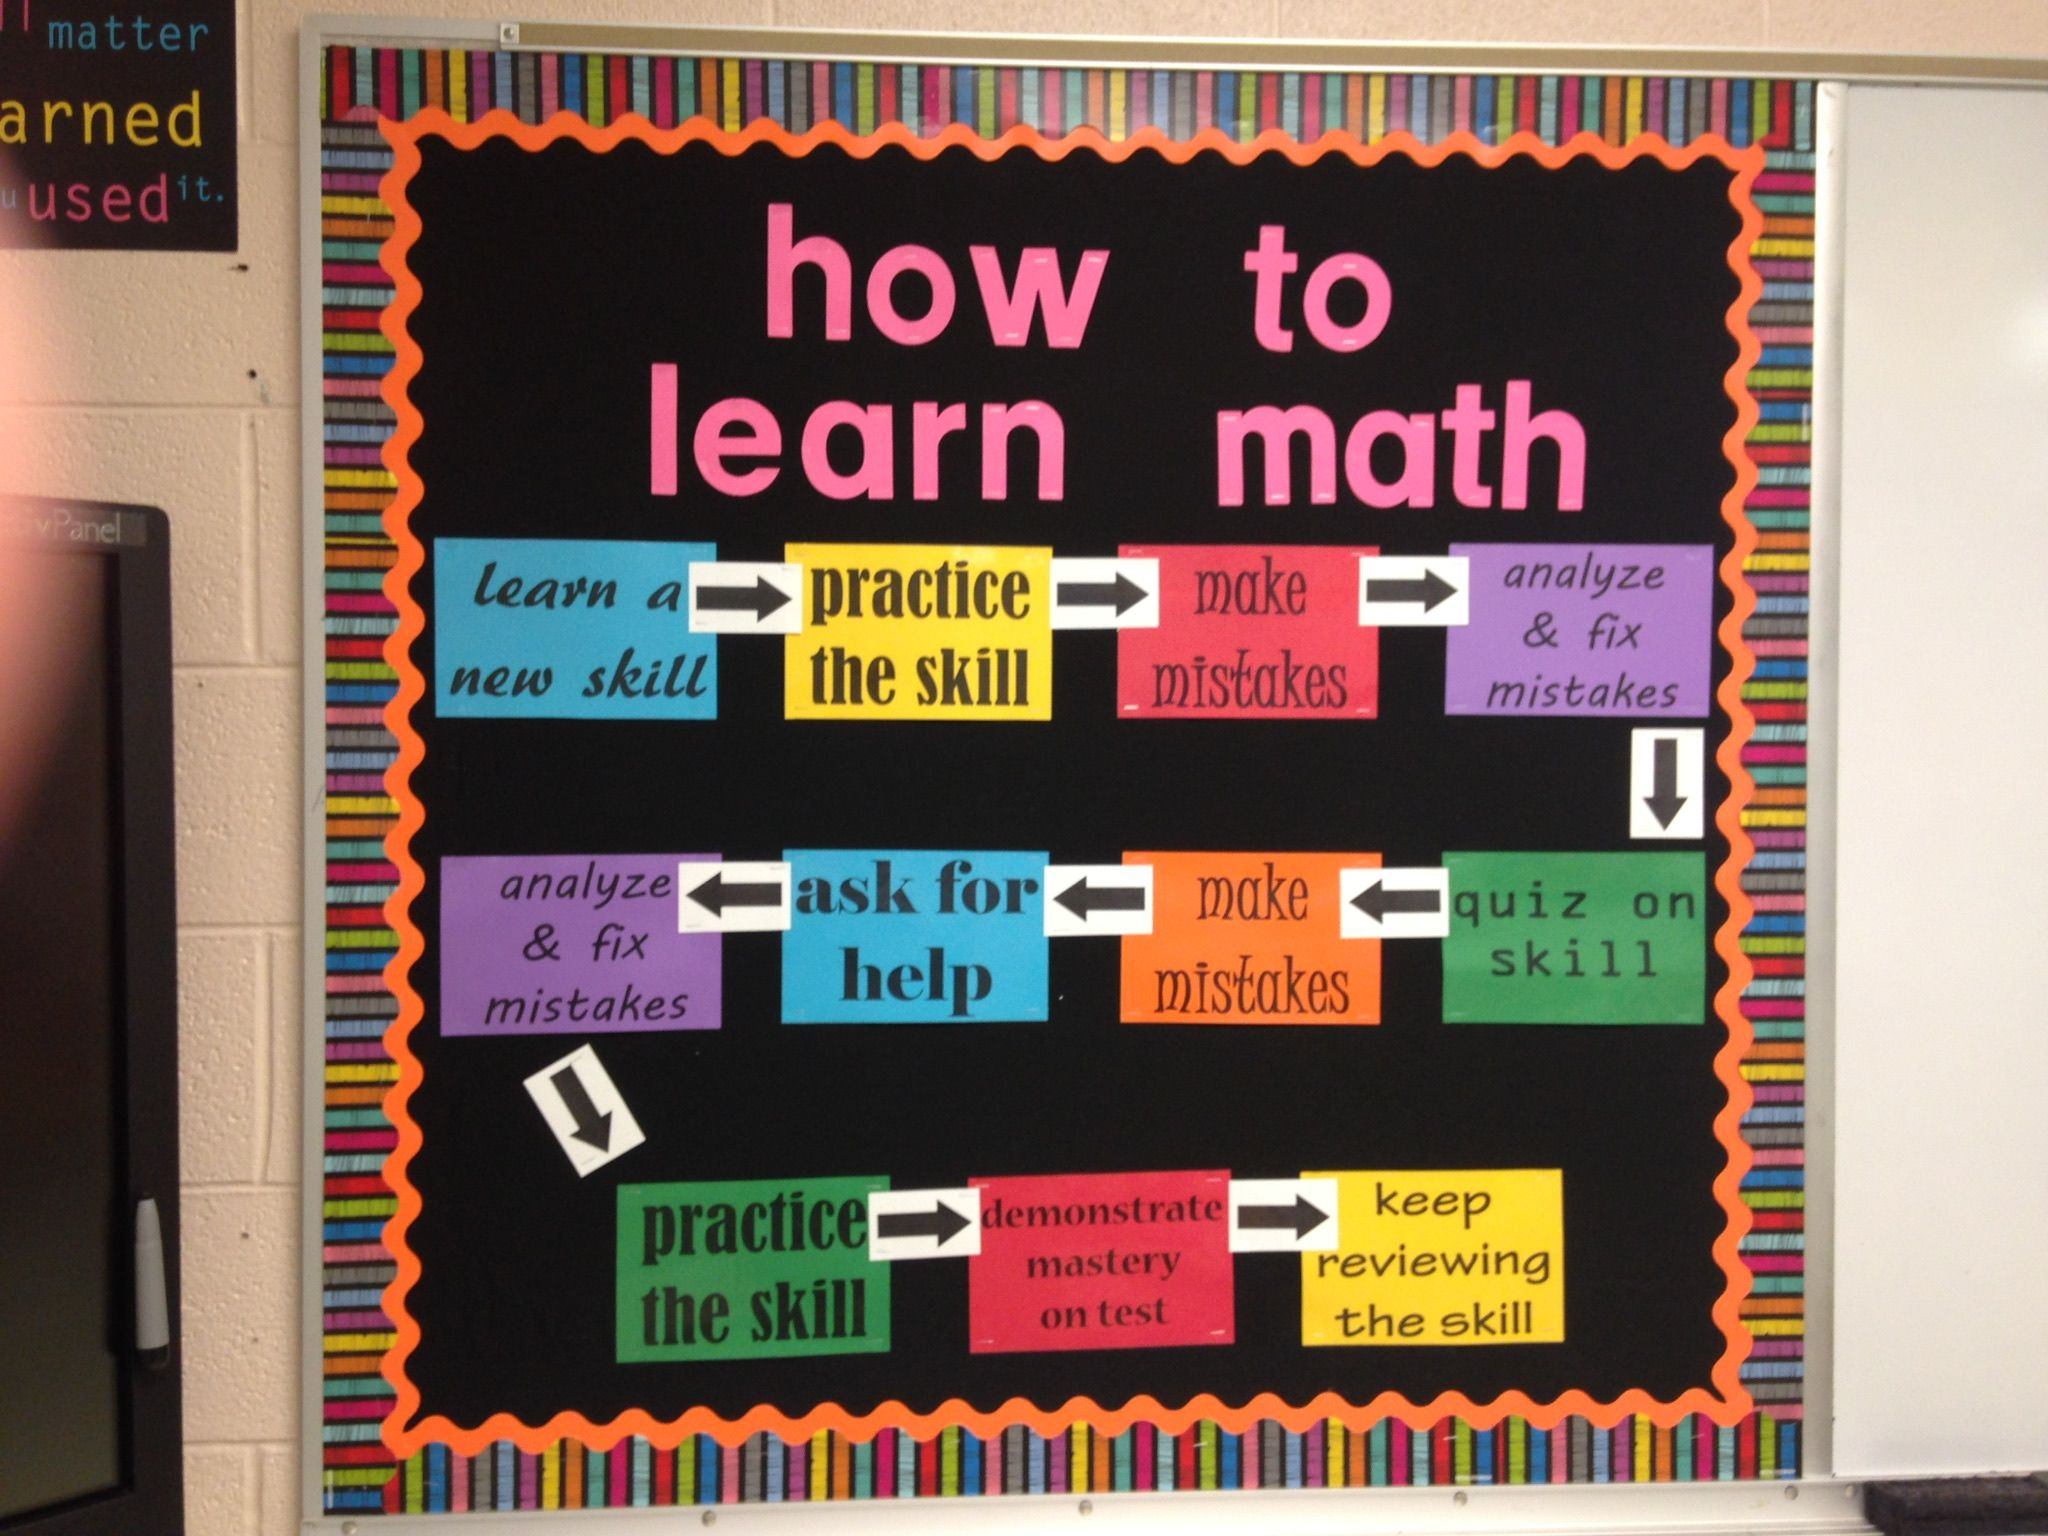 what can we learn from math Alongside with math i can, we aim to help you cultivate and utilize a growth mindset as you continue along your mathematical journey learn more at mashupmathcom tiggly is a learning company based in new york city with a focus on designing learning systems for tablets.